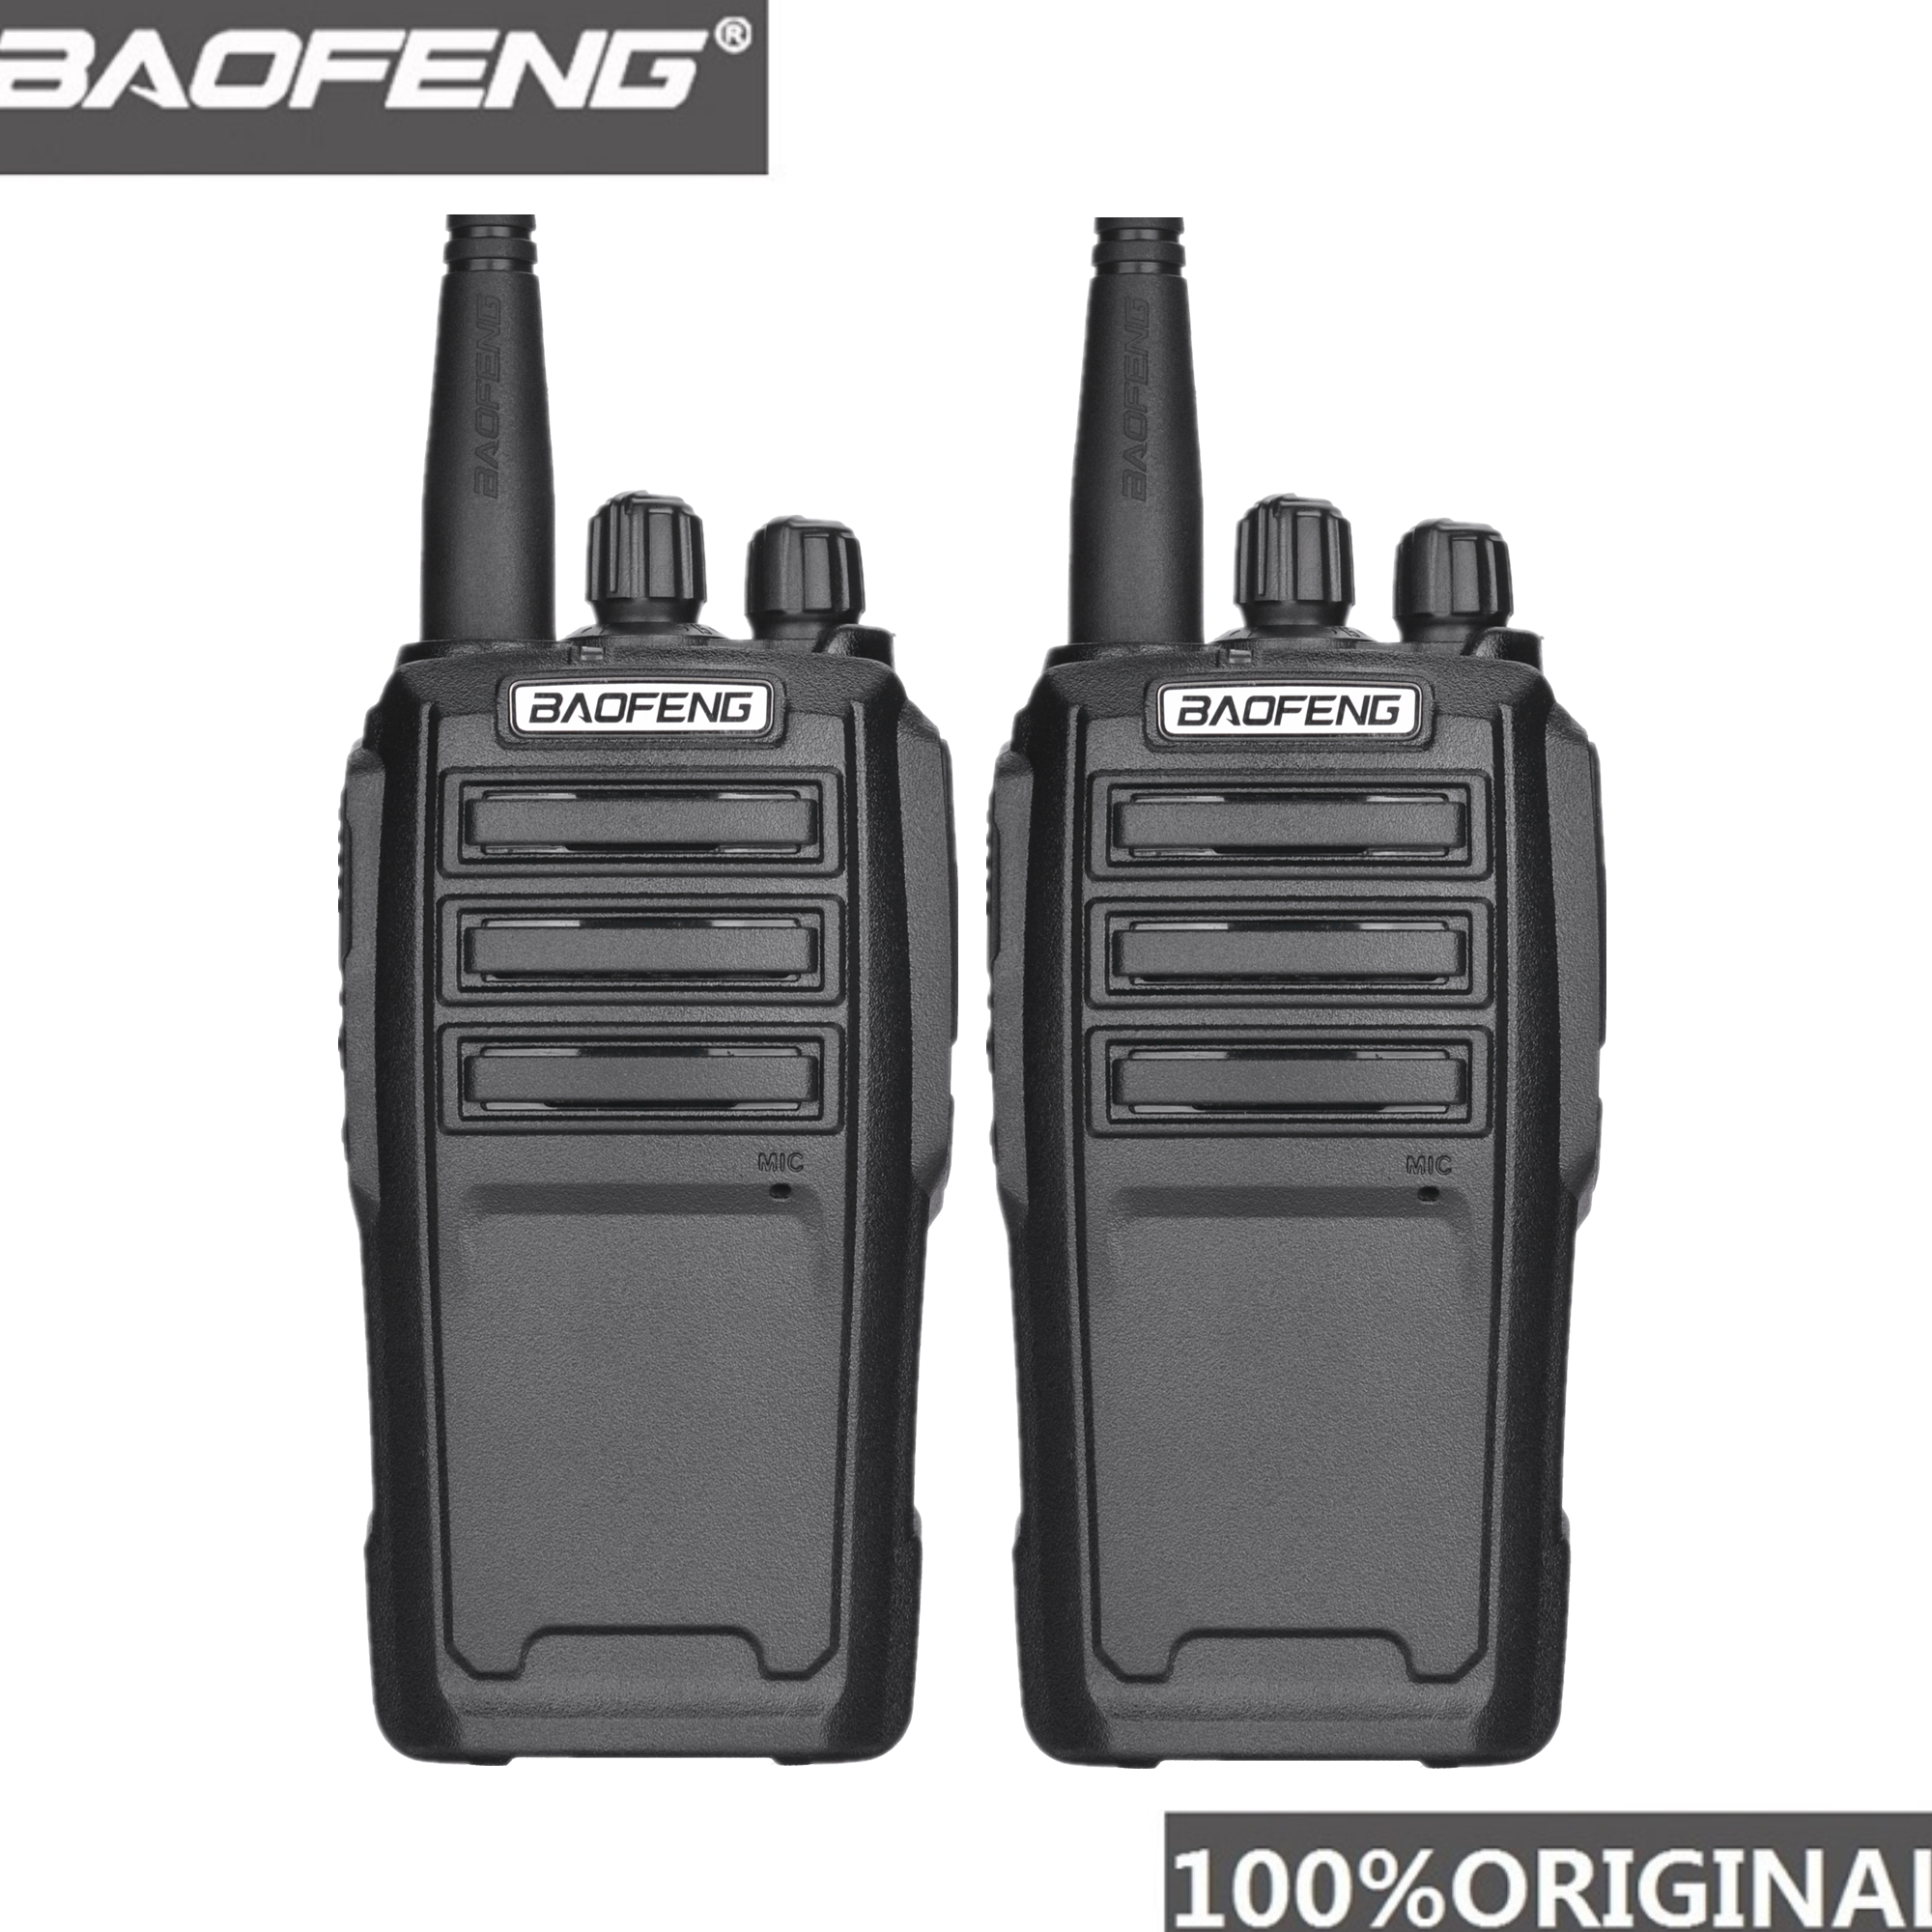 2PCS Baofeng UV-6 8W Ham Radio Security Guard Equipment Two Way Radio Encrypted Handheld Walkie Talkie Ham Radio HF Transceiver